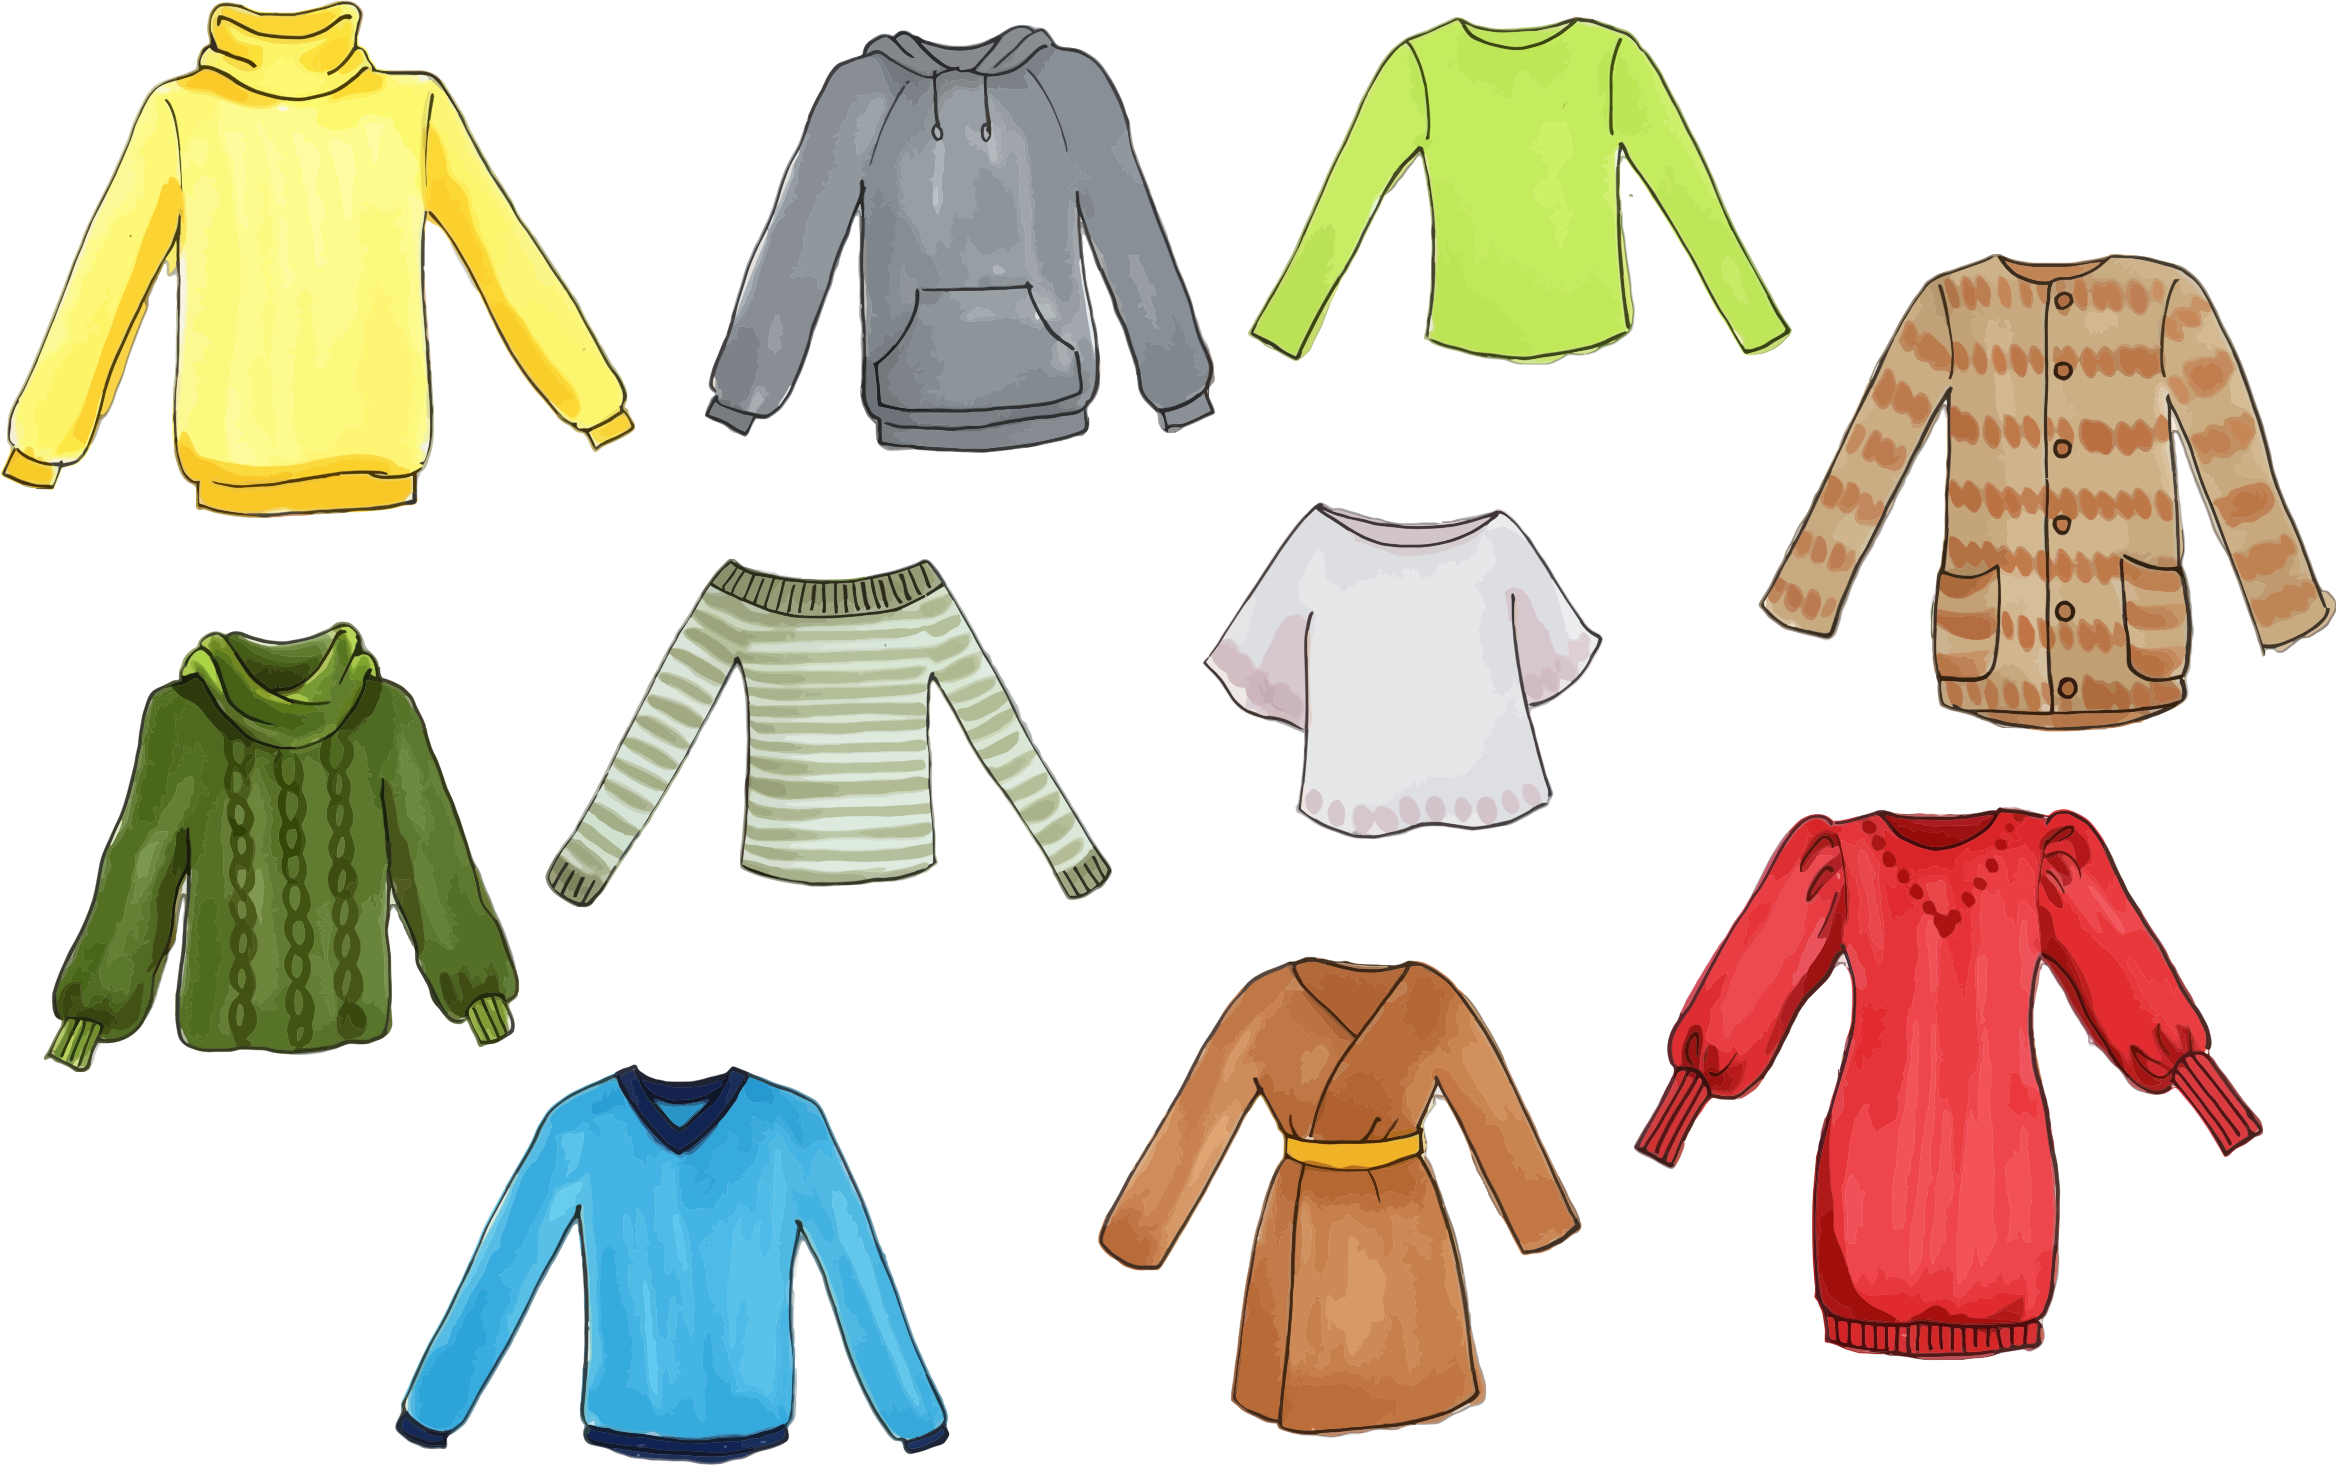 Tops big image png. Clothing clipart colorful clothes